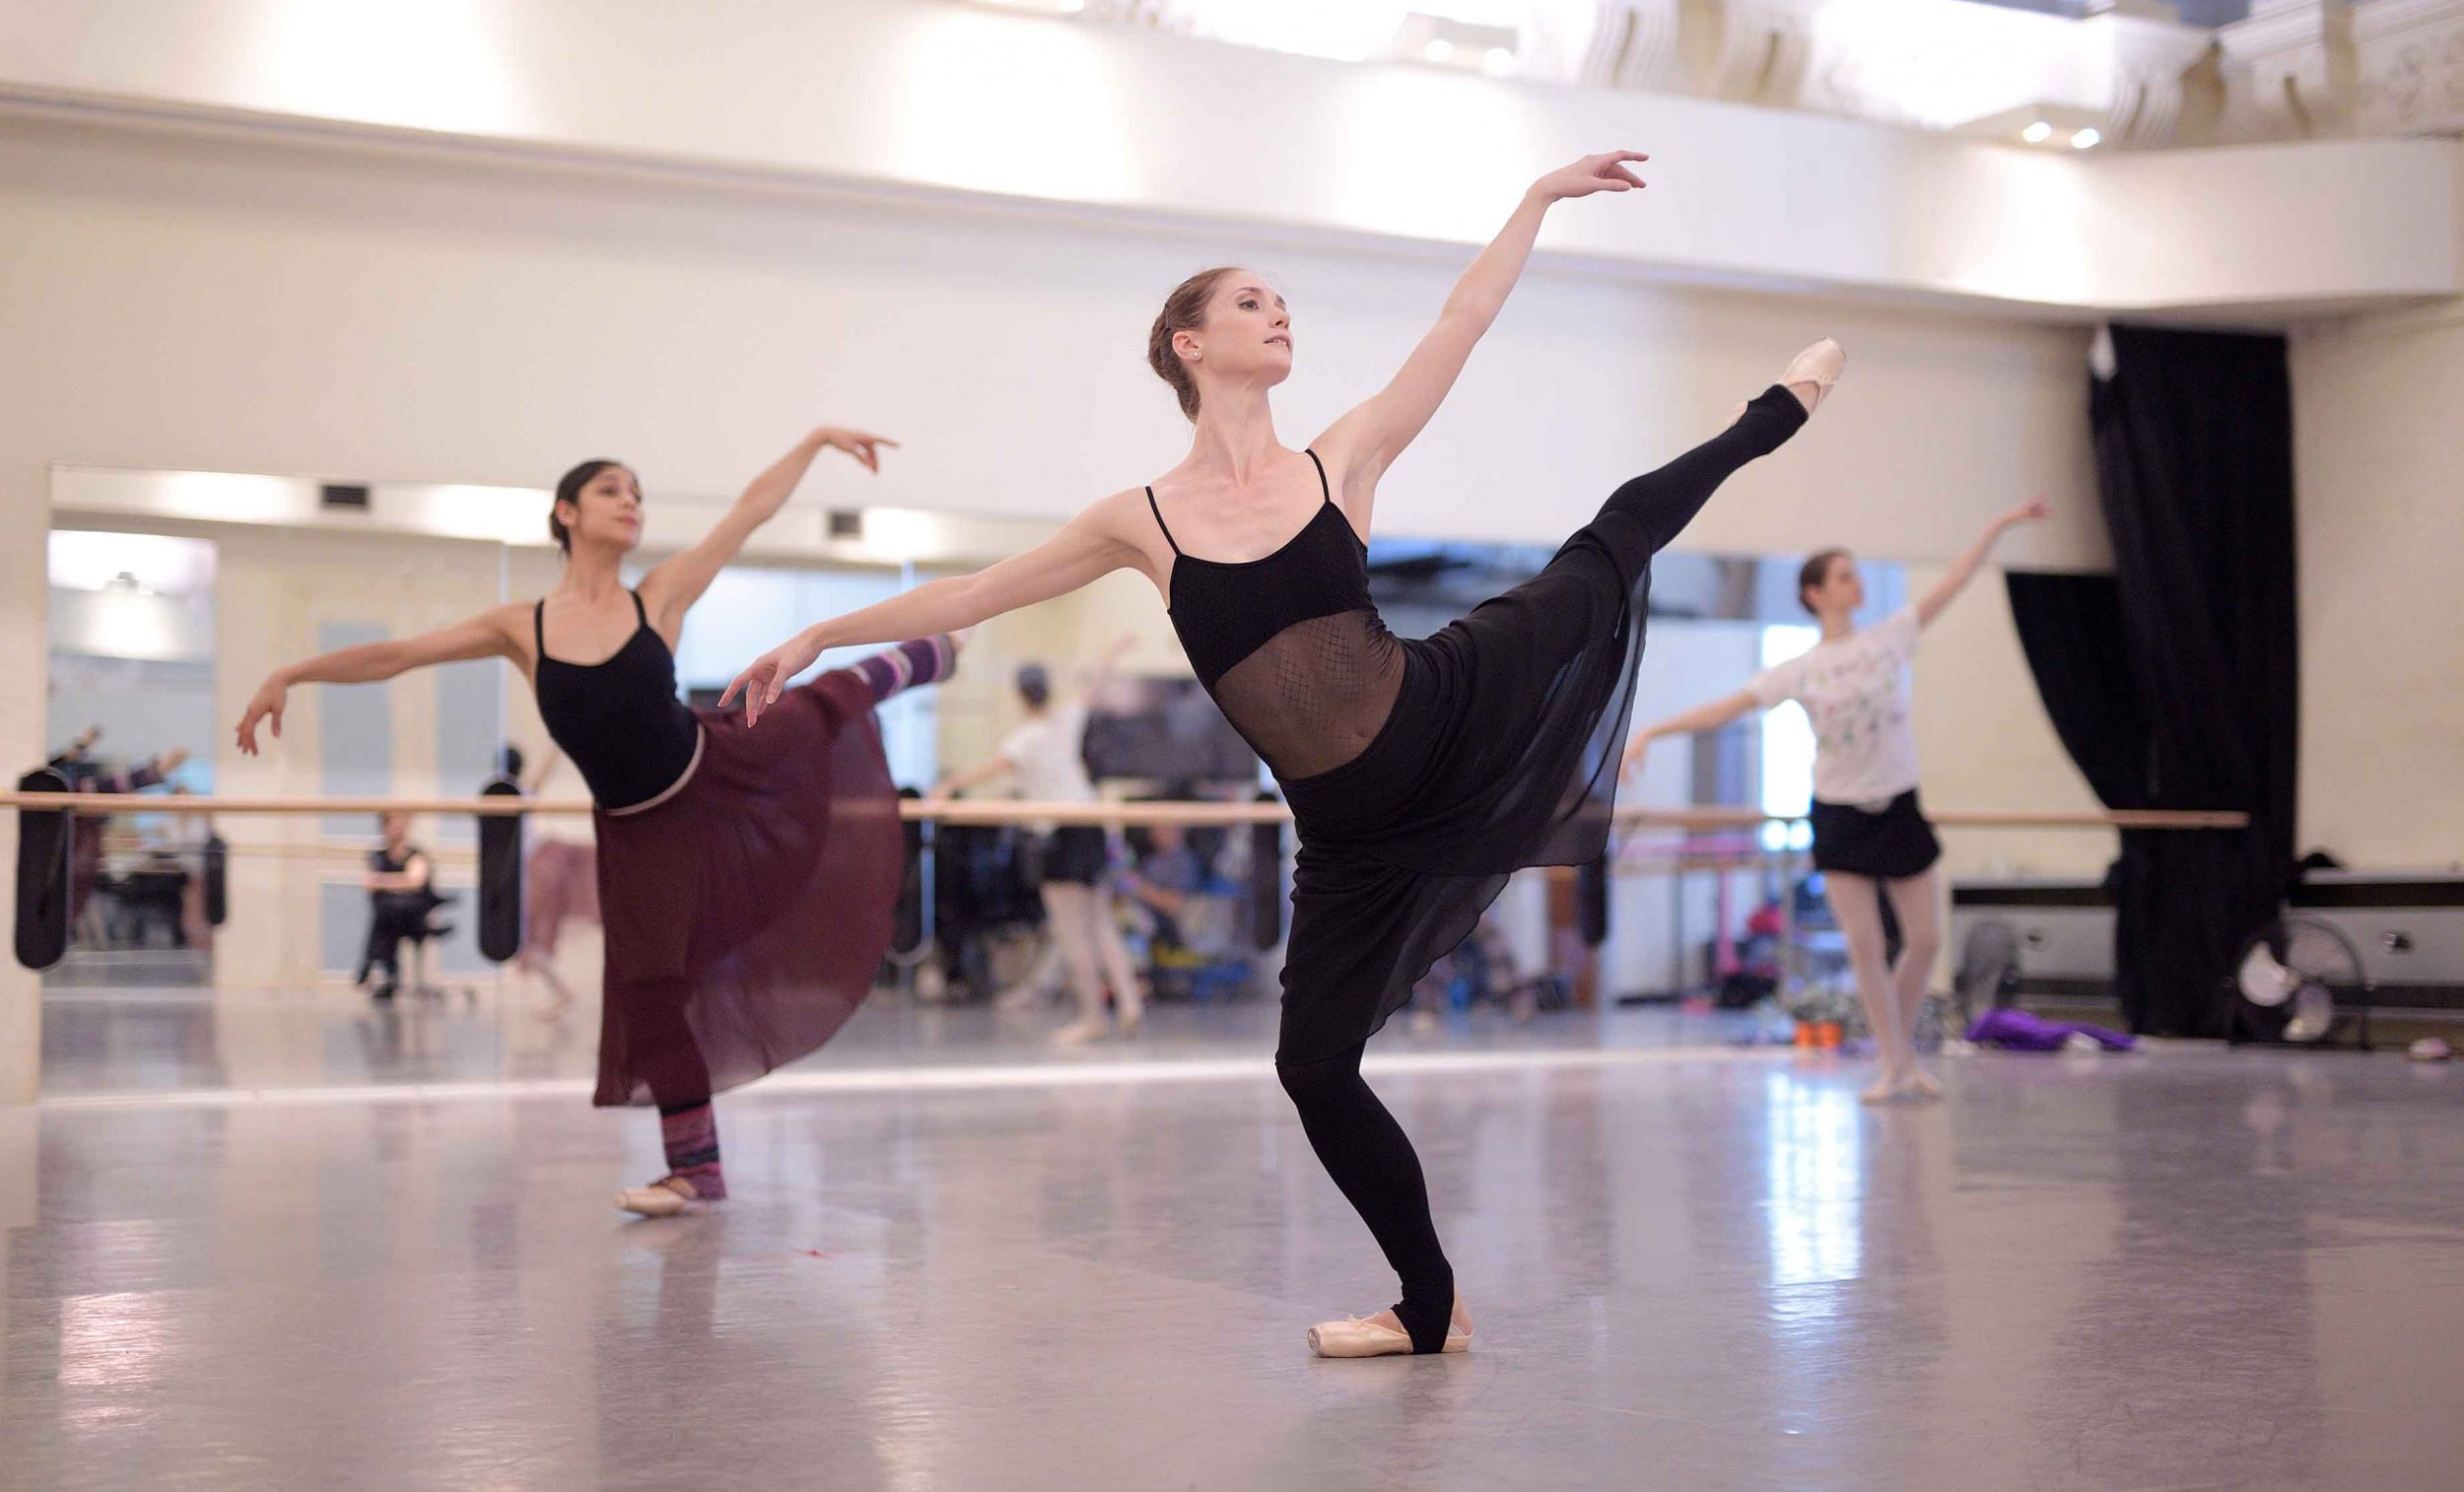 Alison-McWhinney-and-Crystal-Costa-rehearsing-La-Sylphide-©-Laurent-Liotardo